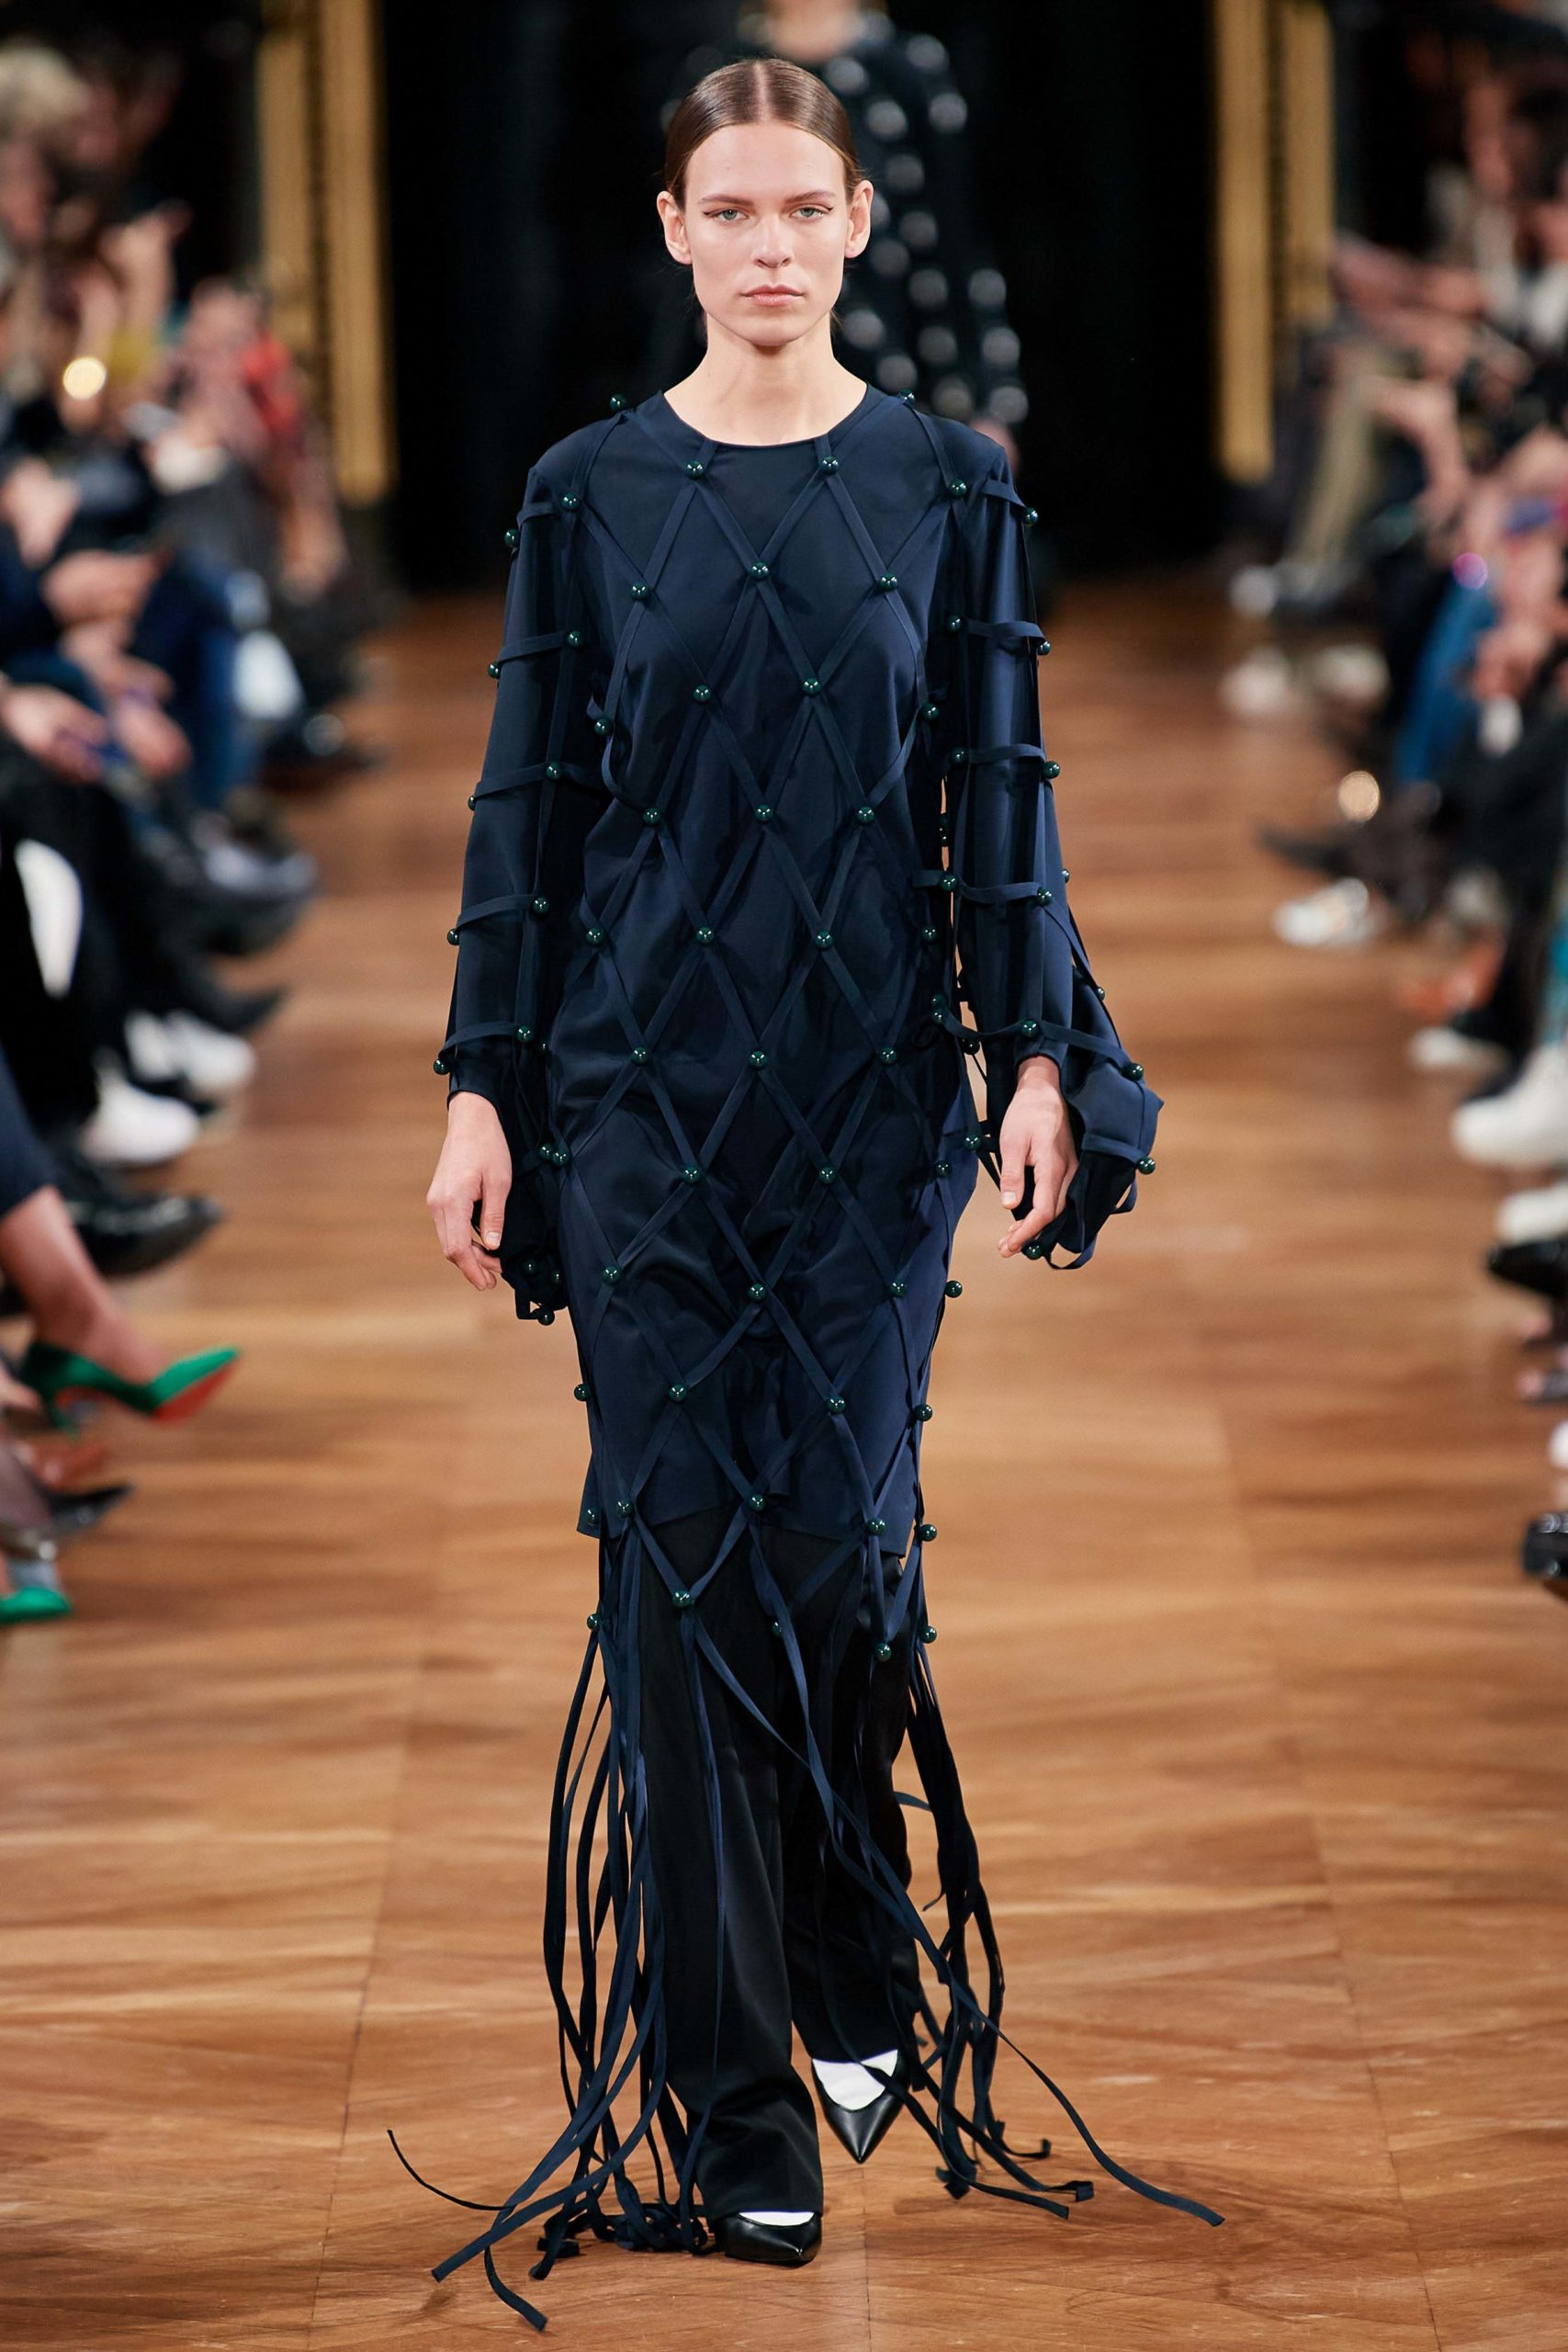 Stella McCartney Fall 2020 trends runway coverage Ready To Wear Vogue fringe